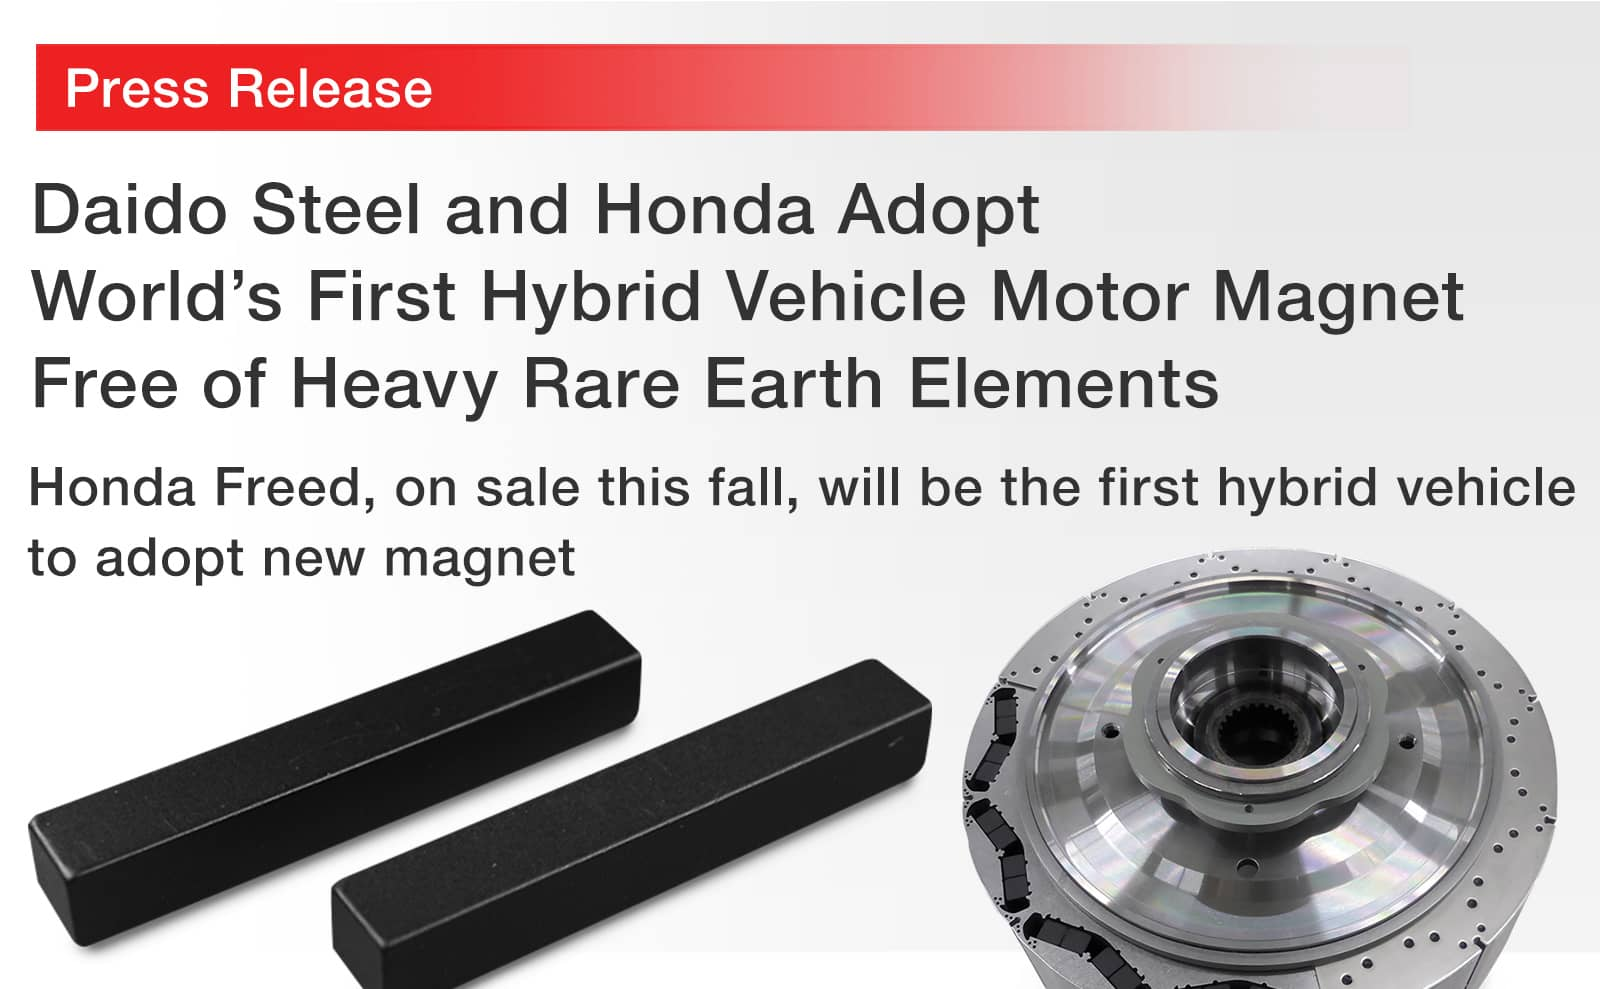 Daido Steel and Honda Adopt World's First Hybrid Vehicle Motor Magnet Free of Heavy Rare Earth Elements